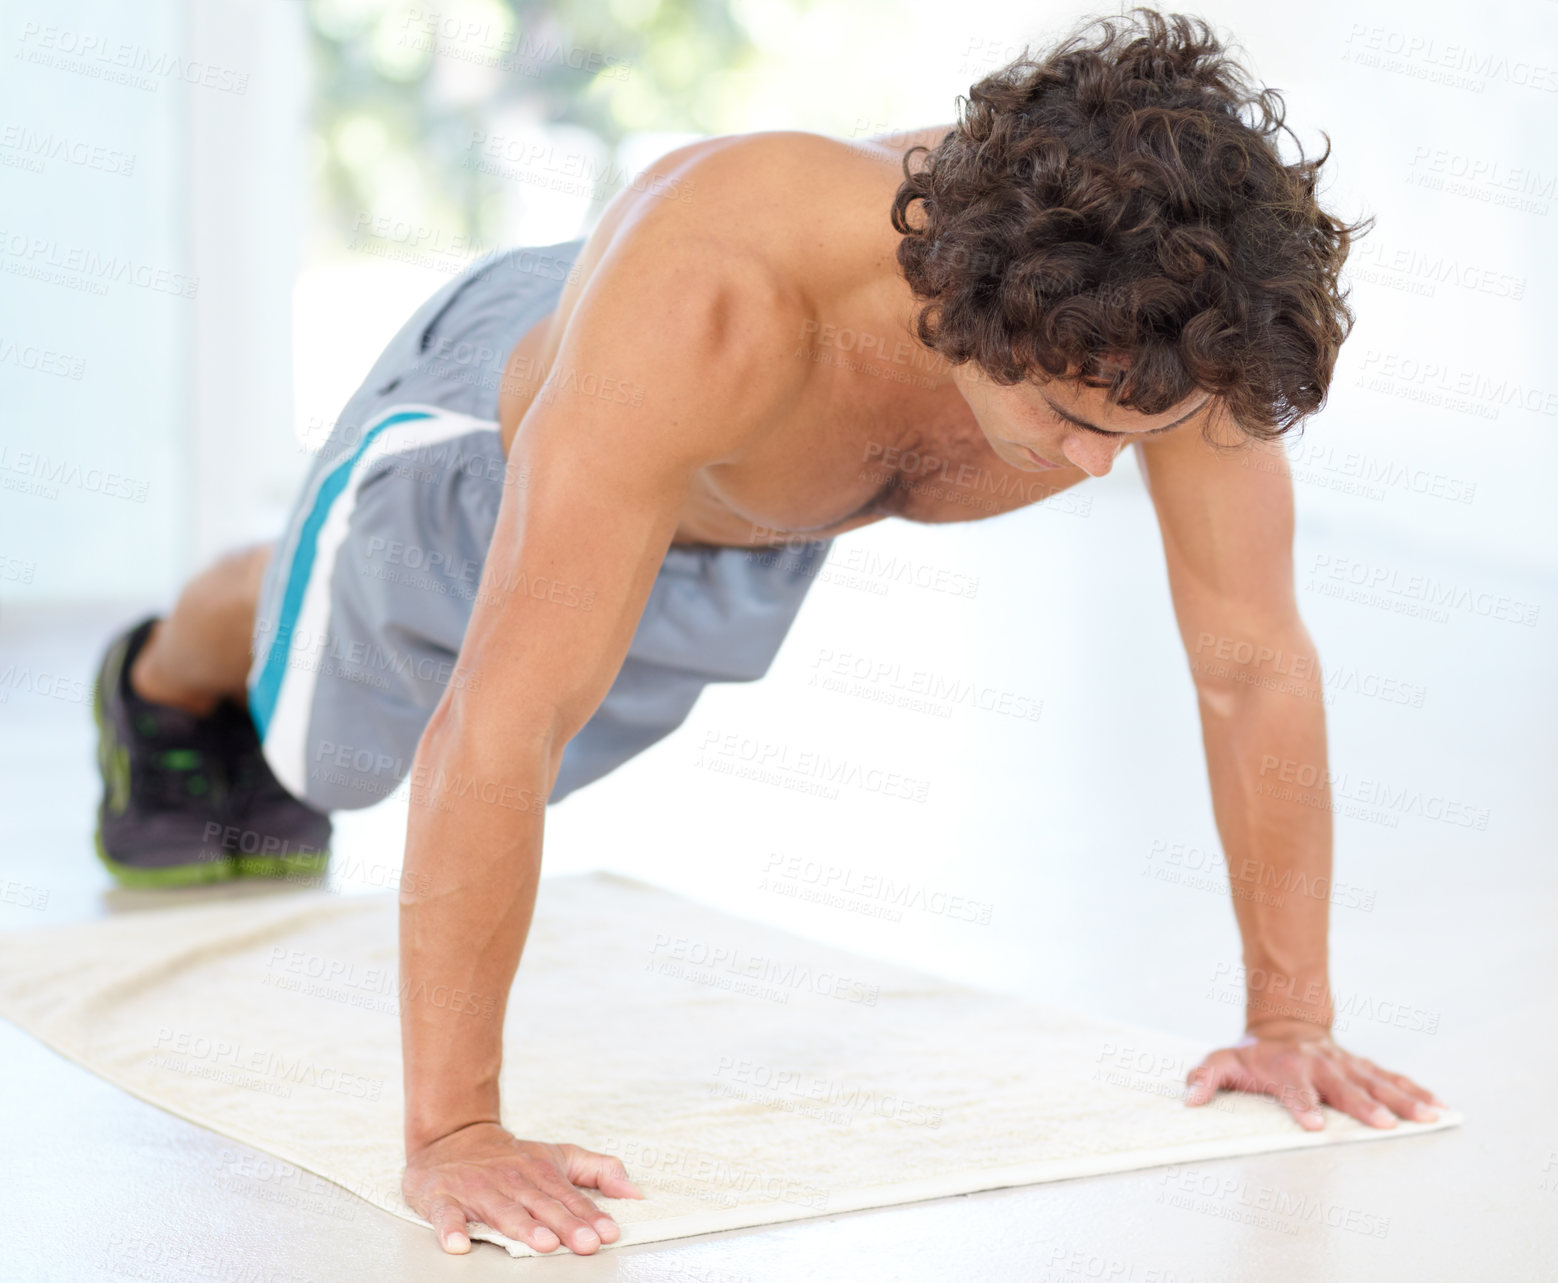 Buy stock photo A sexy young man doing pushups on the floor